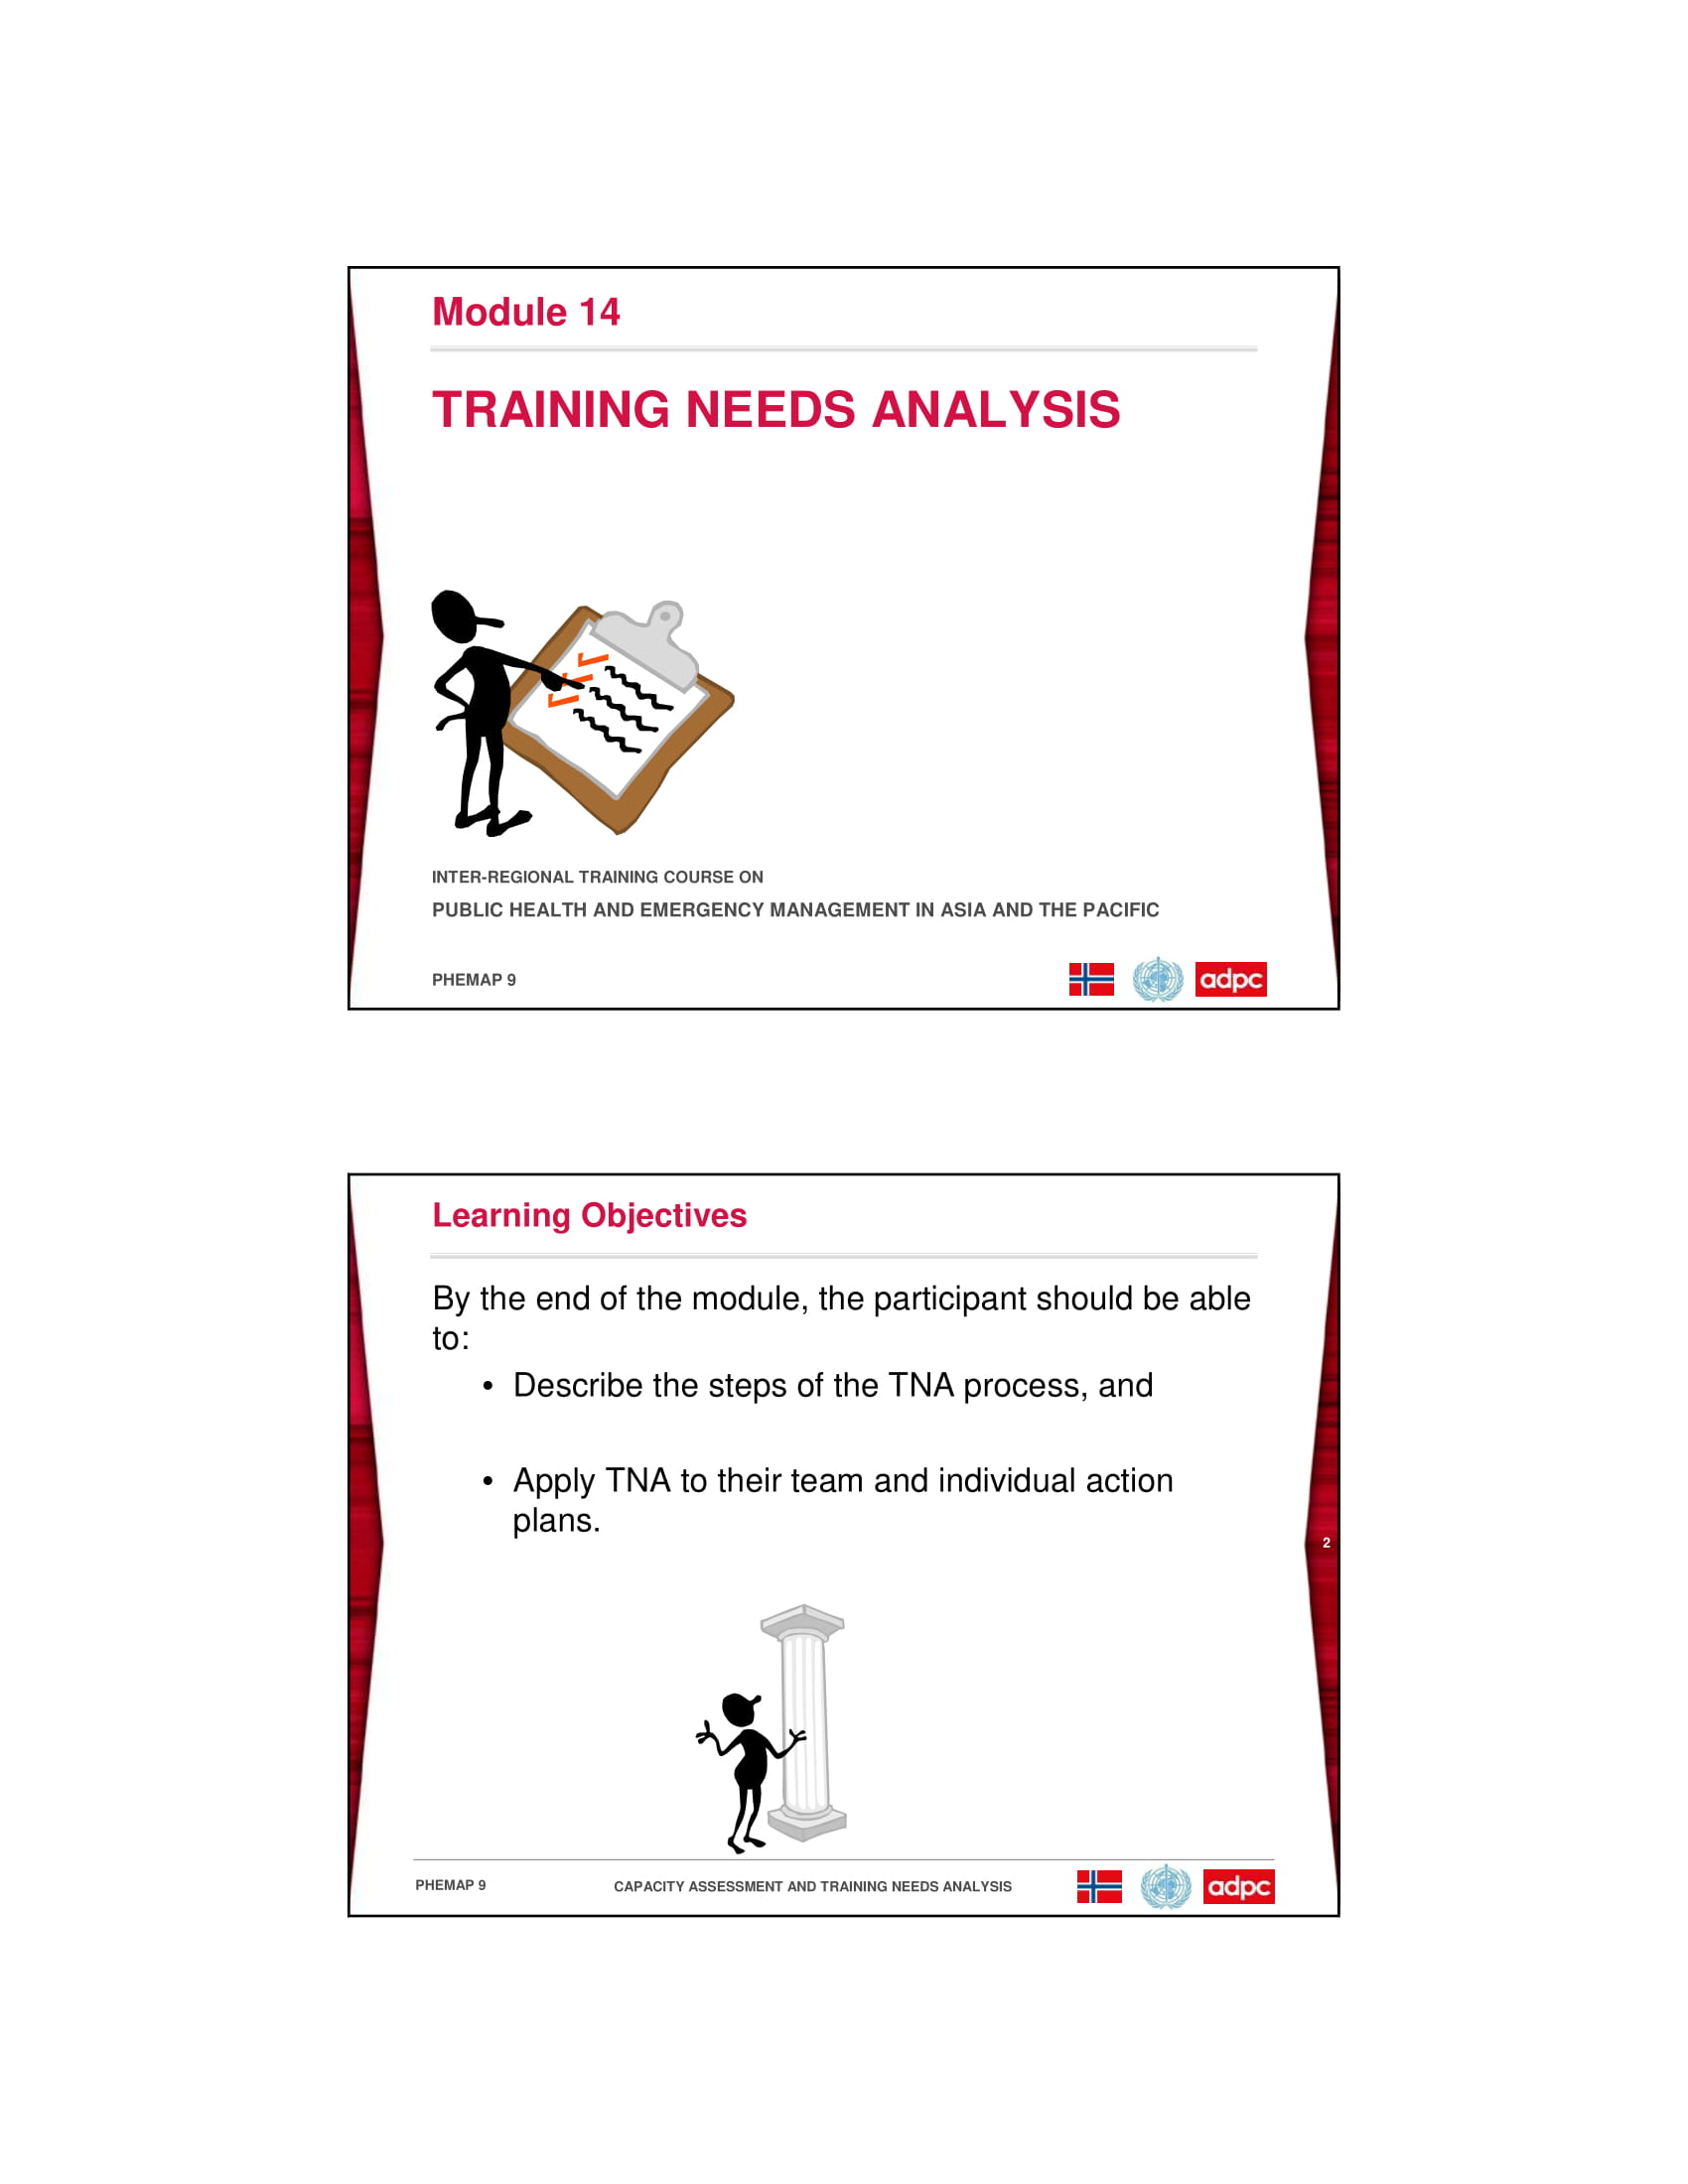 training gap and needs analysis module example 01